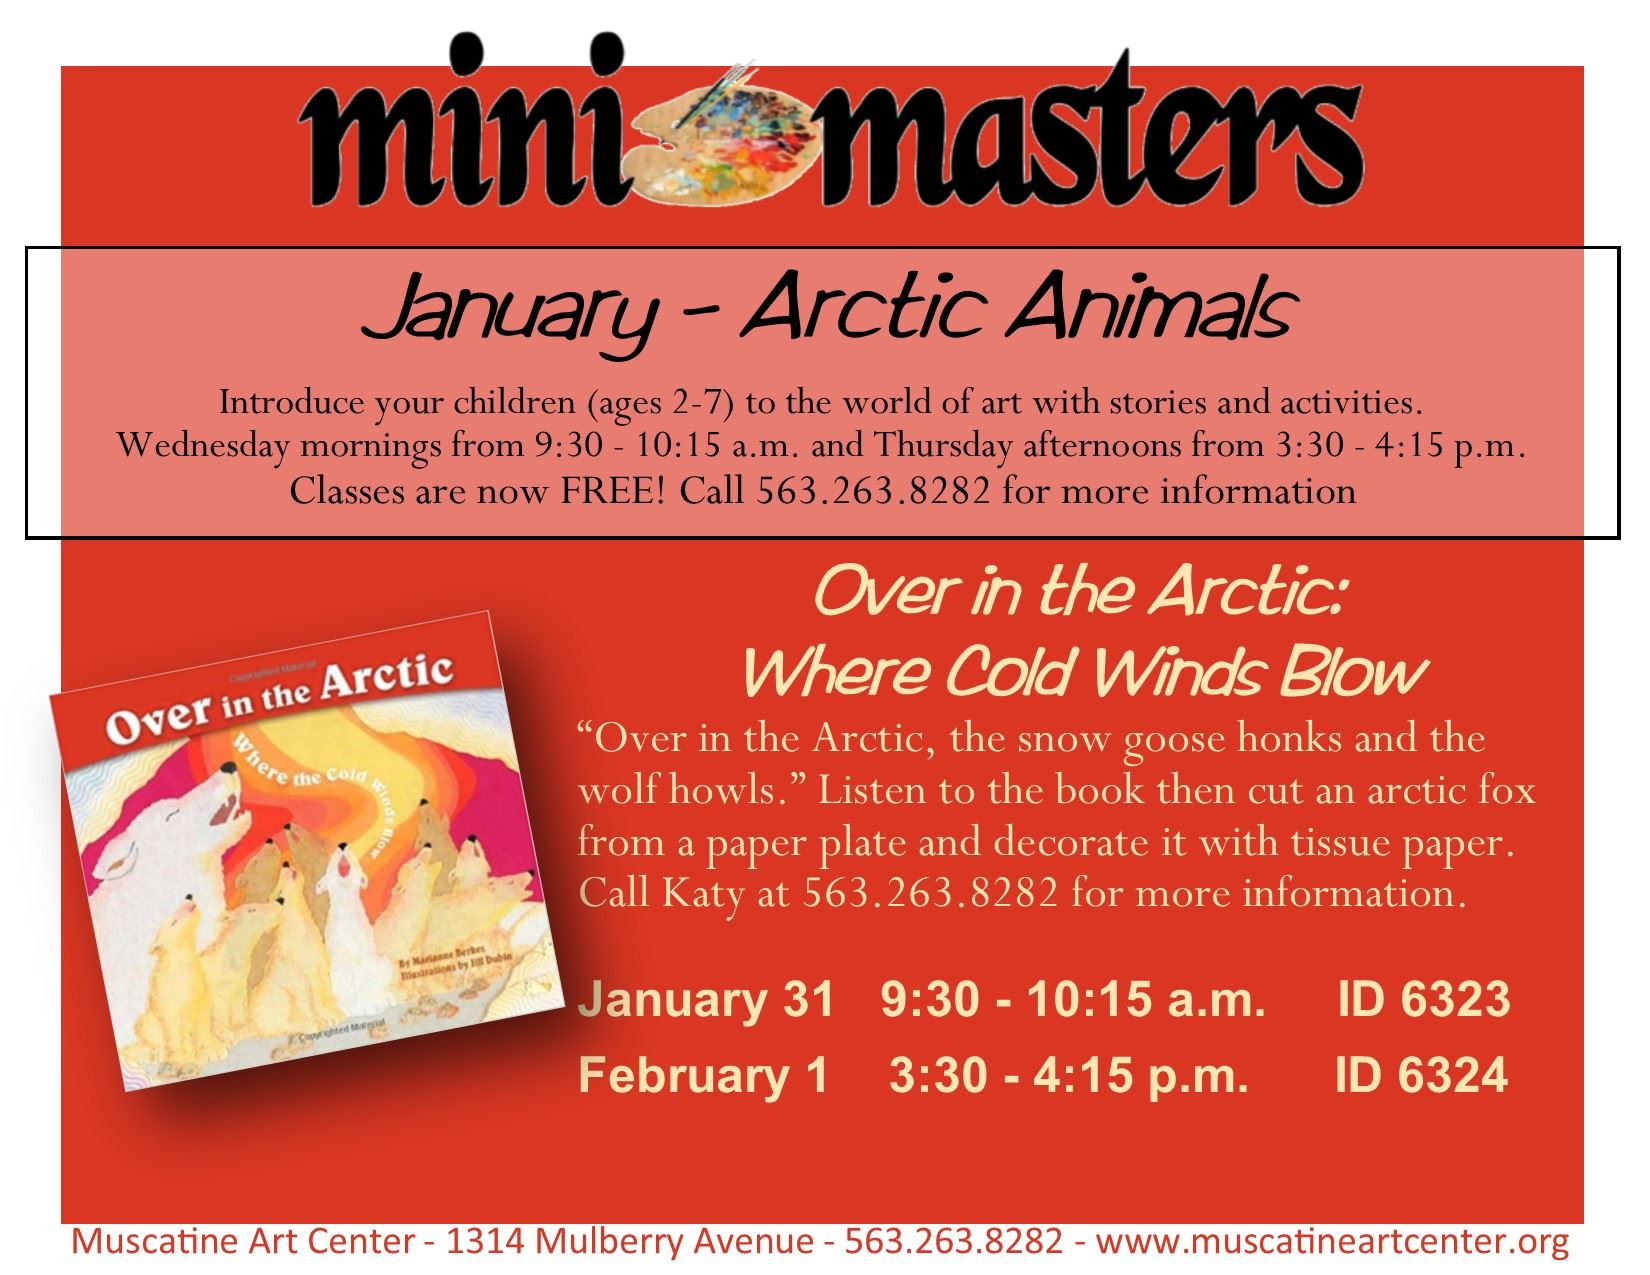 January 31 1 - Mini Masters -Over in the Arctic - Where the Cold Winds Blow